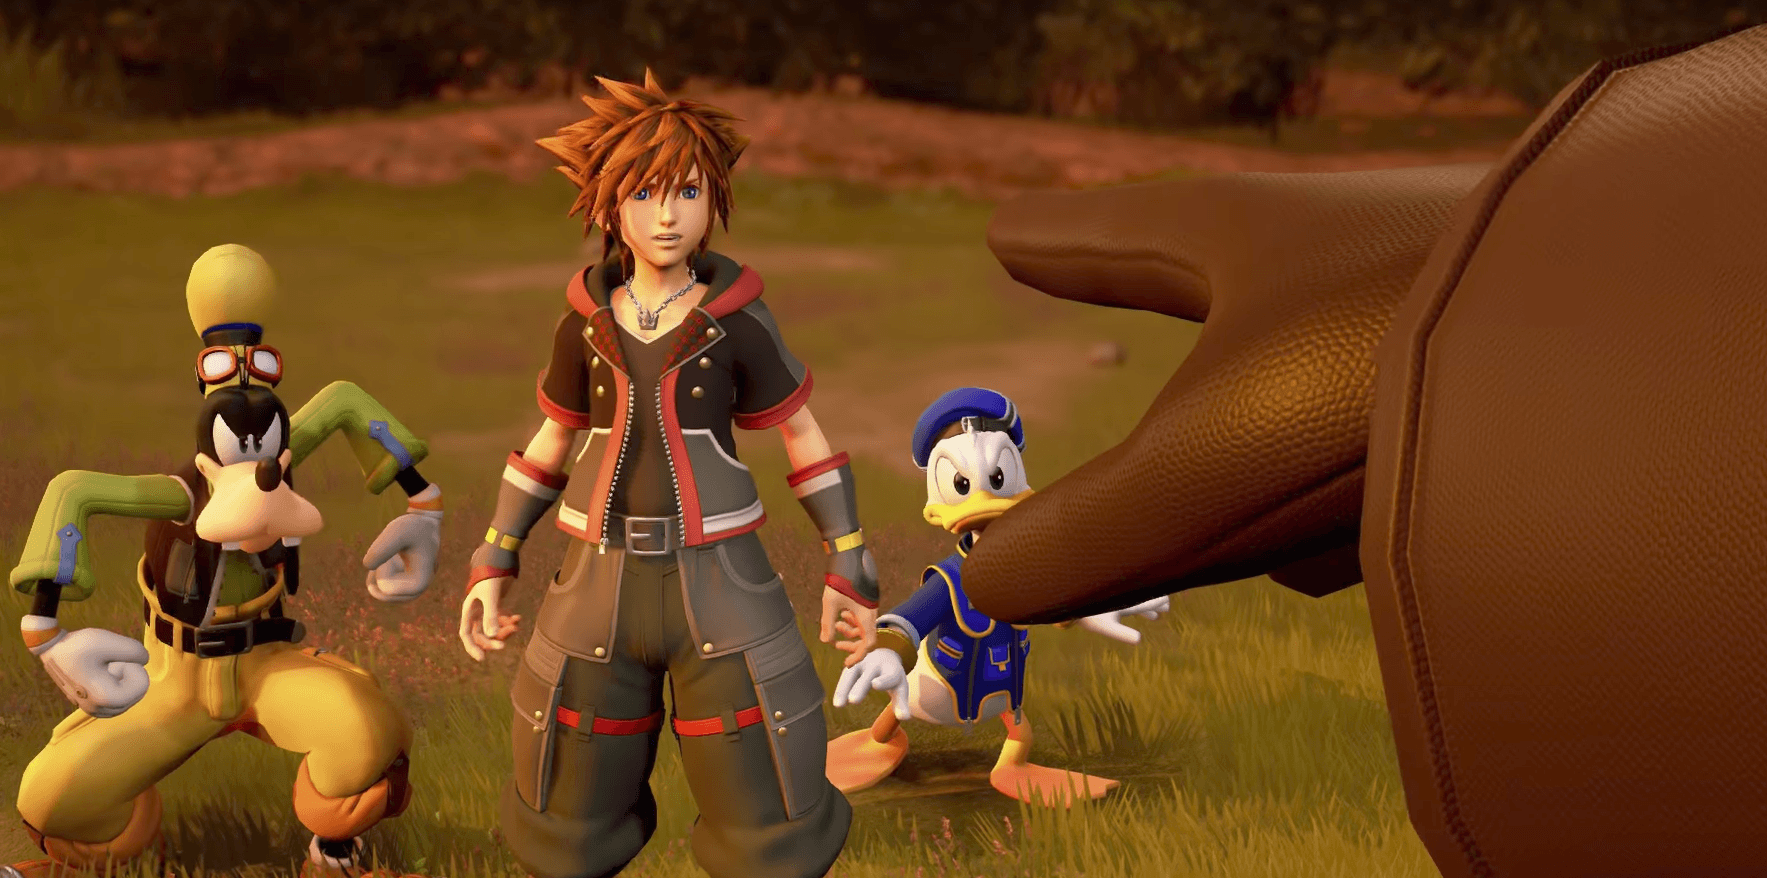 Kingdom Hearts 3 Has a New Trailer and Release Date